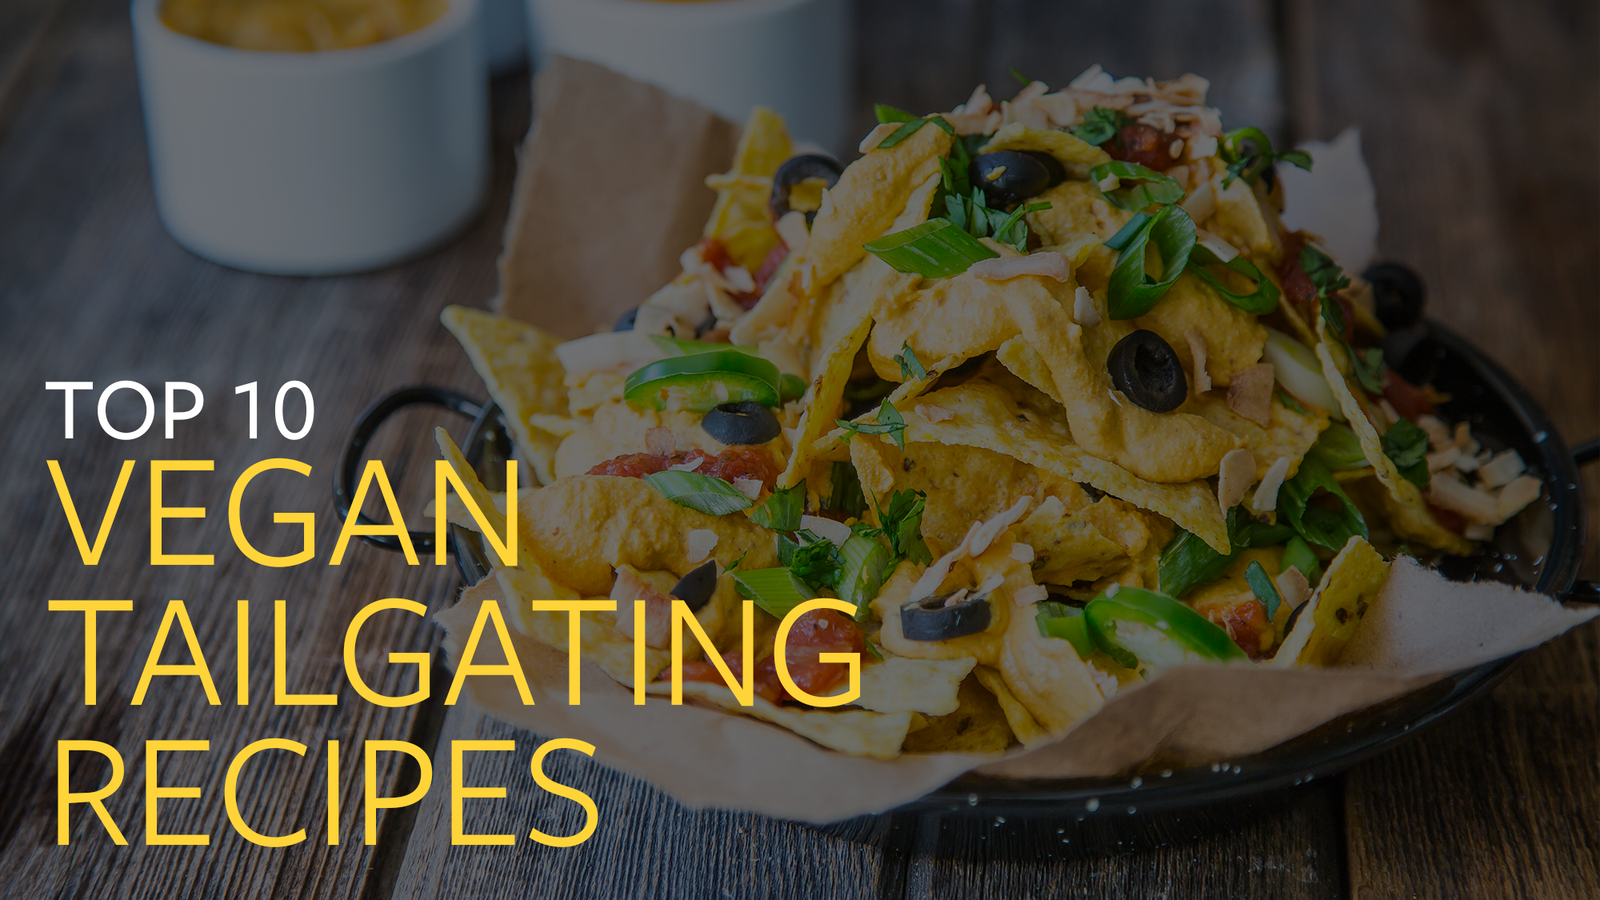 Top 10 Vegan Tailgating Recipes